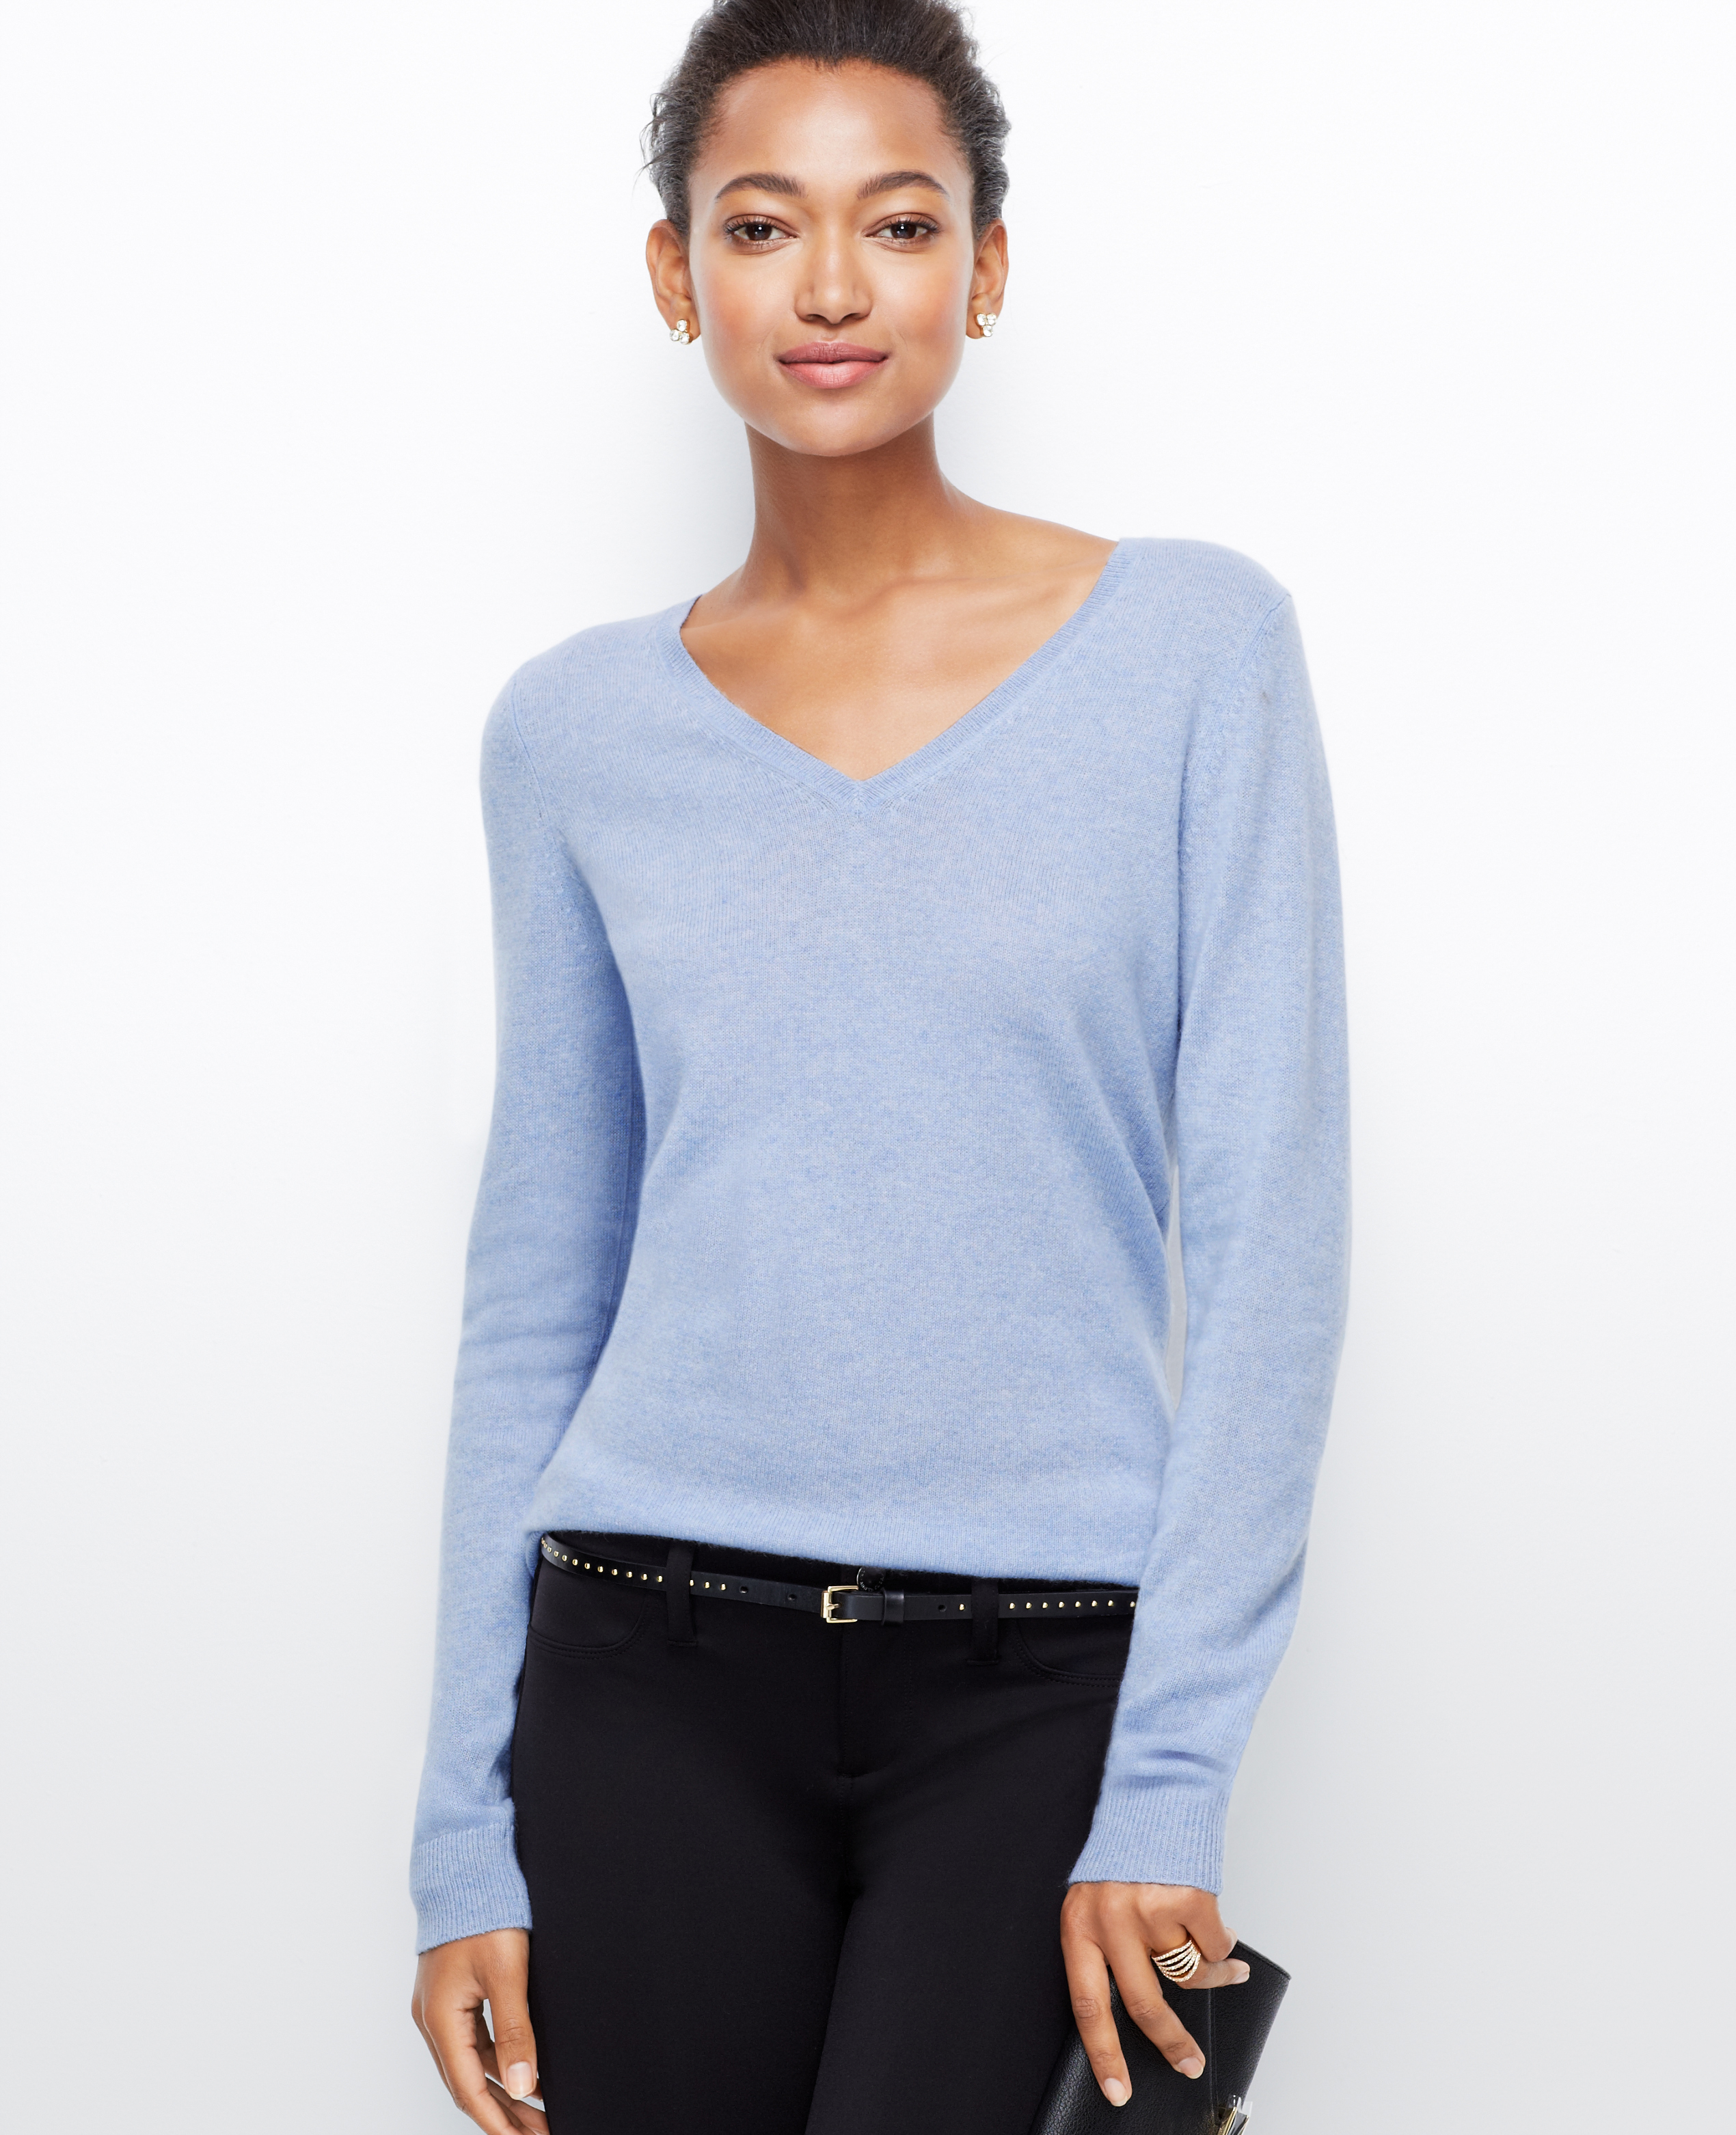 Shop cropped cashmere cardigan at Neiman Marcus, where you will find free shipping on the latest in fashion from top designers.